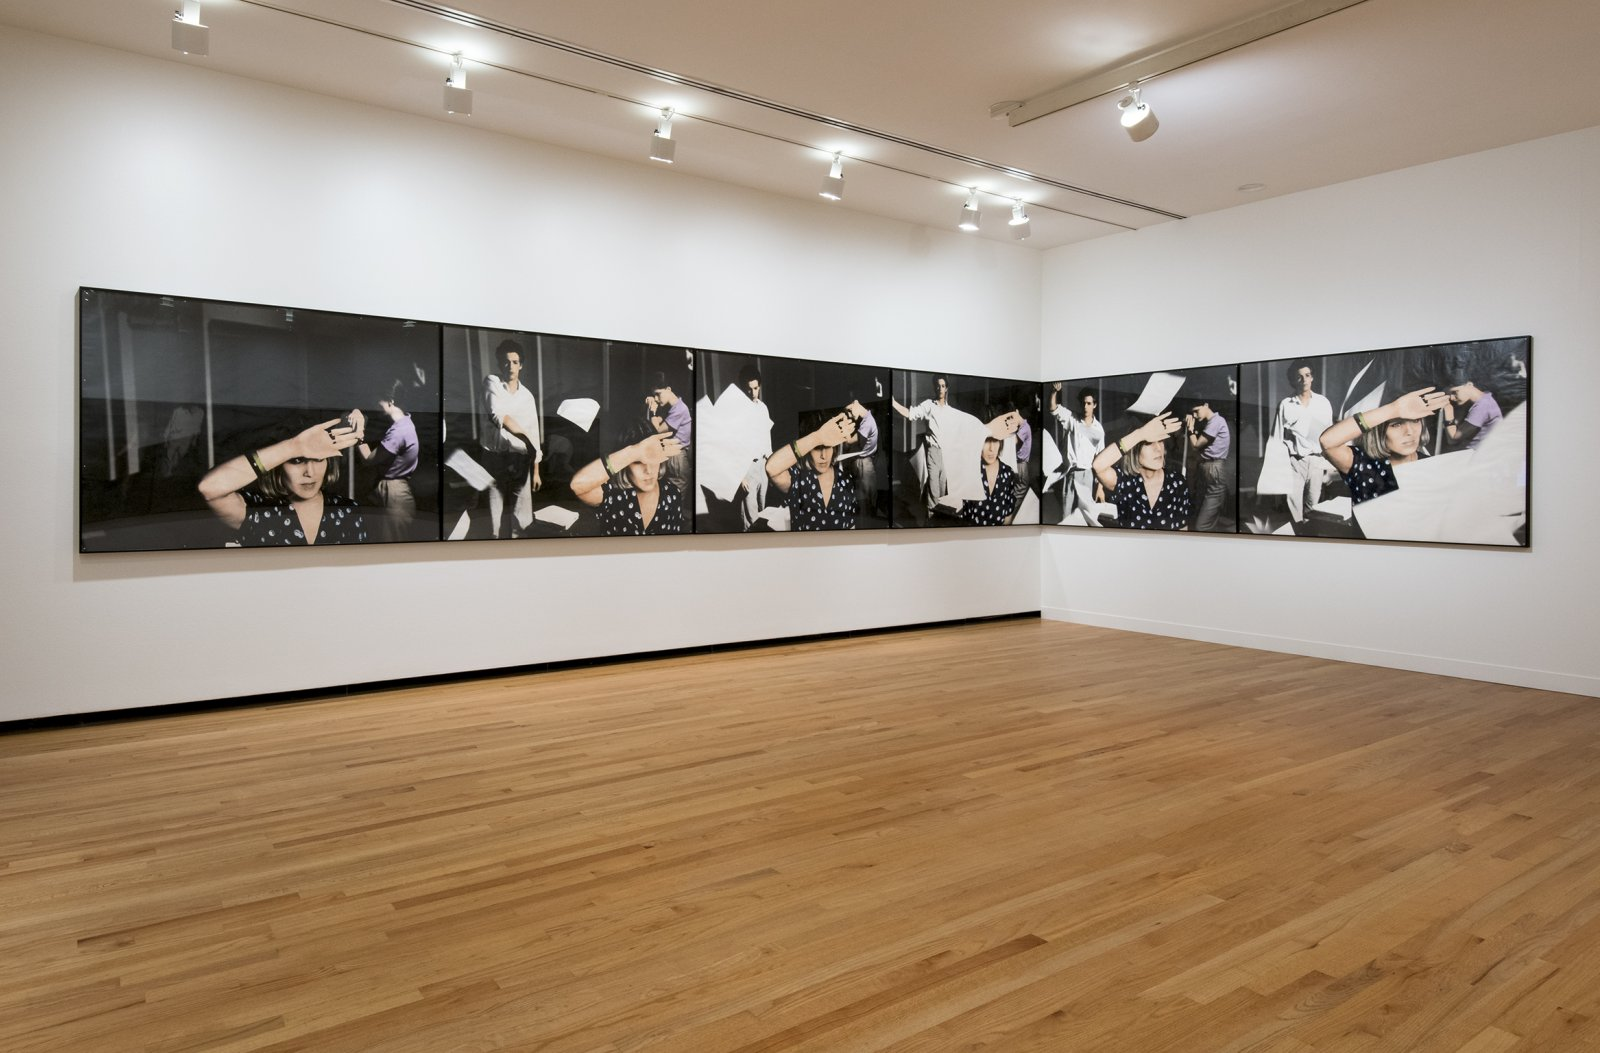 Ian Wallace, An Attack on Literature I, 1975, 12 hand-coloured silver gelatin prints, 49 x 412 in. (124 x 1047 cm). Installation view, A Literature of Images, Vancouver Art Gallery, 2012 by Ian Wallace